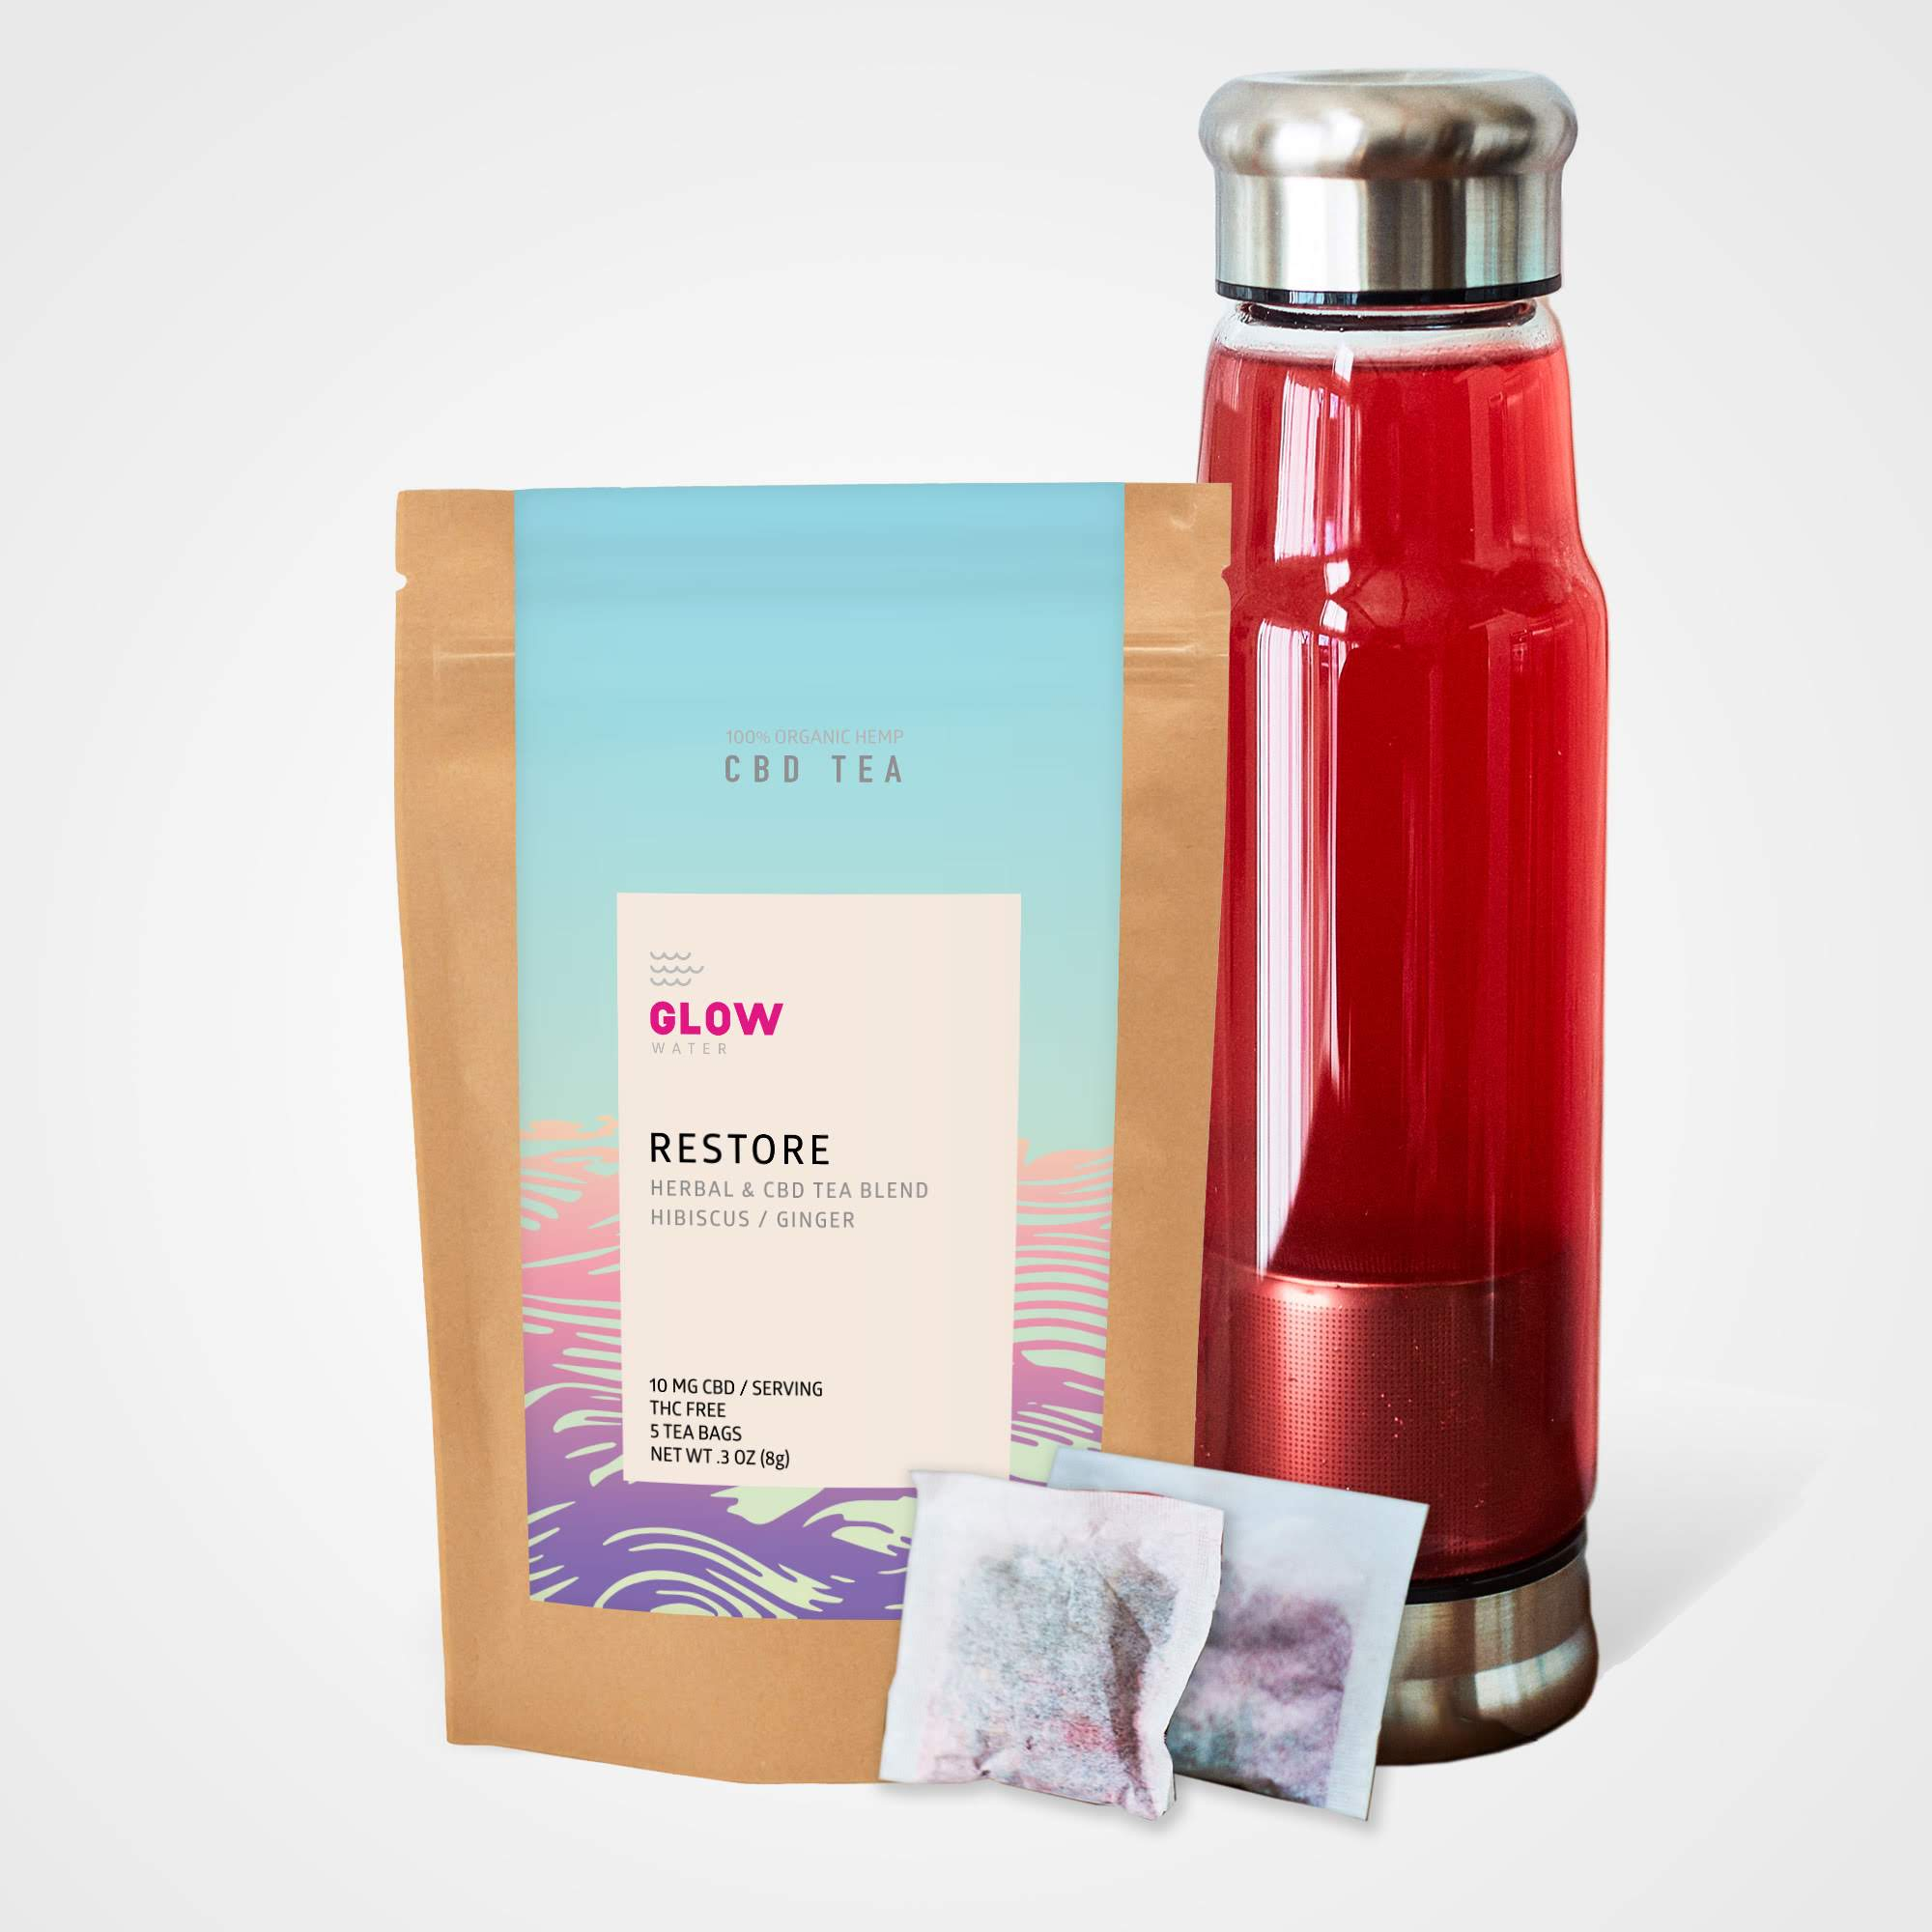 Glow Water Announces CBD Herbal Tea Line